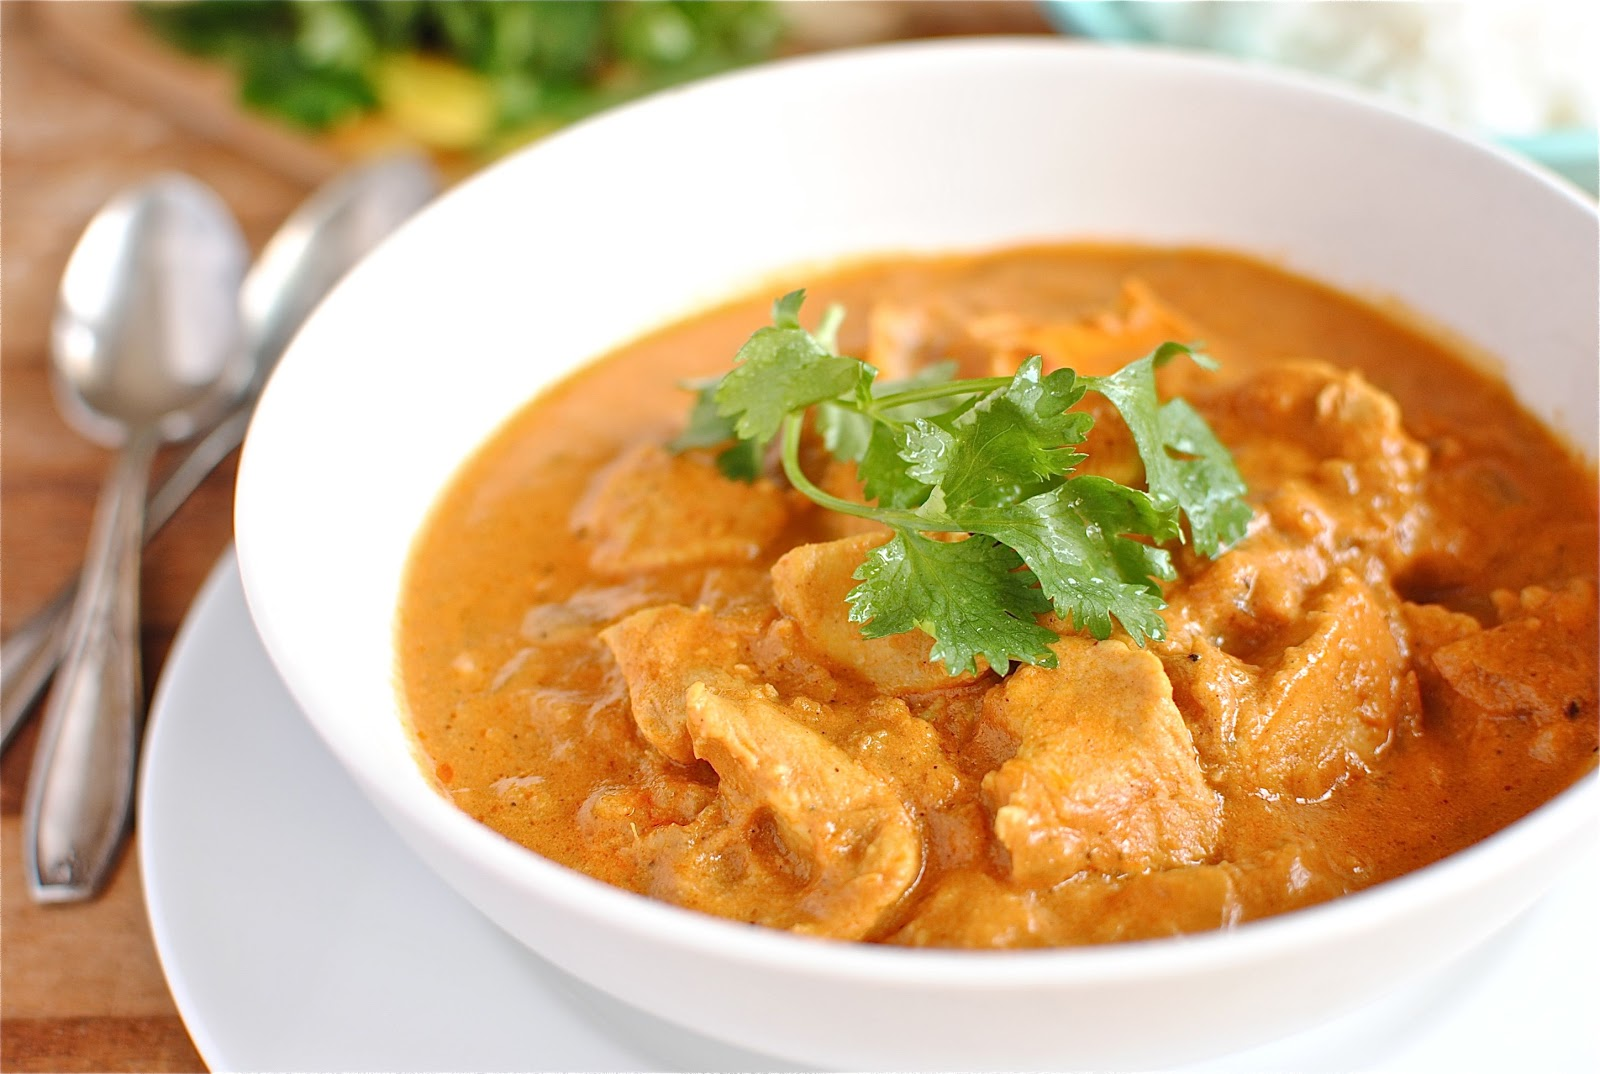 ... butter chicken curry recipe is one of the most famous chicken dishes